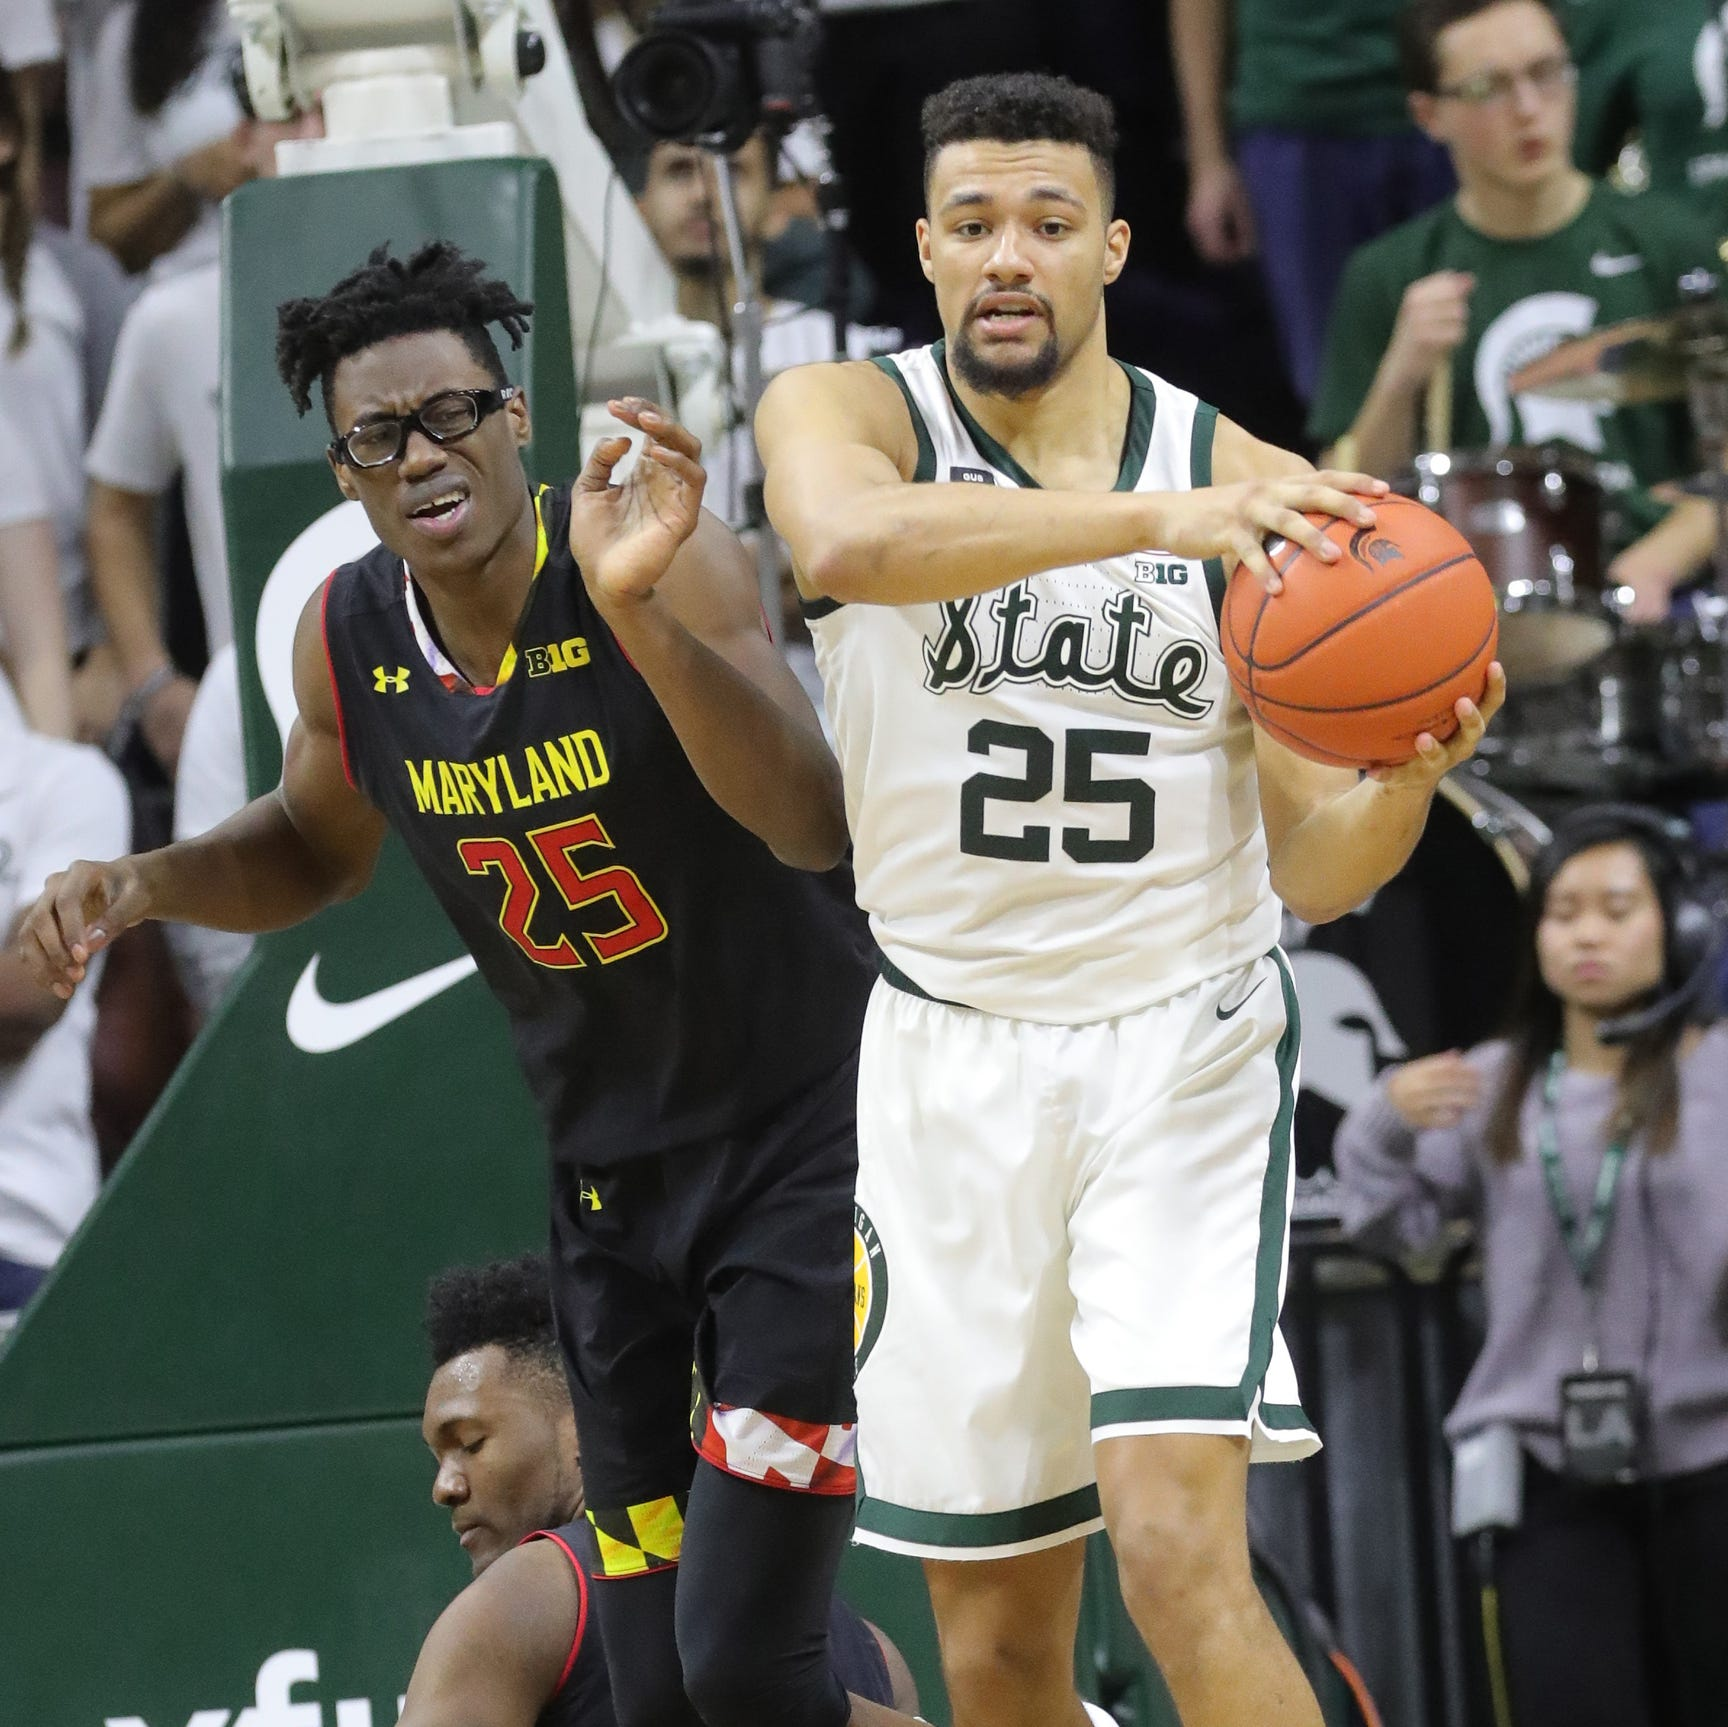 Michigan State basketball doesn't need 5-star center. It has Kenny Goins